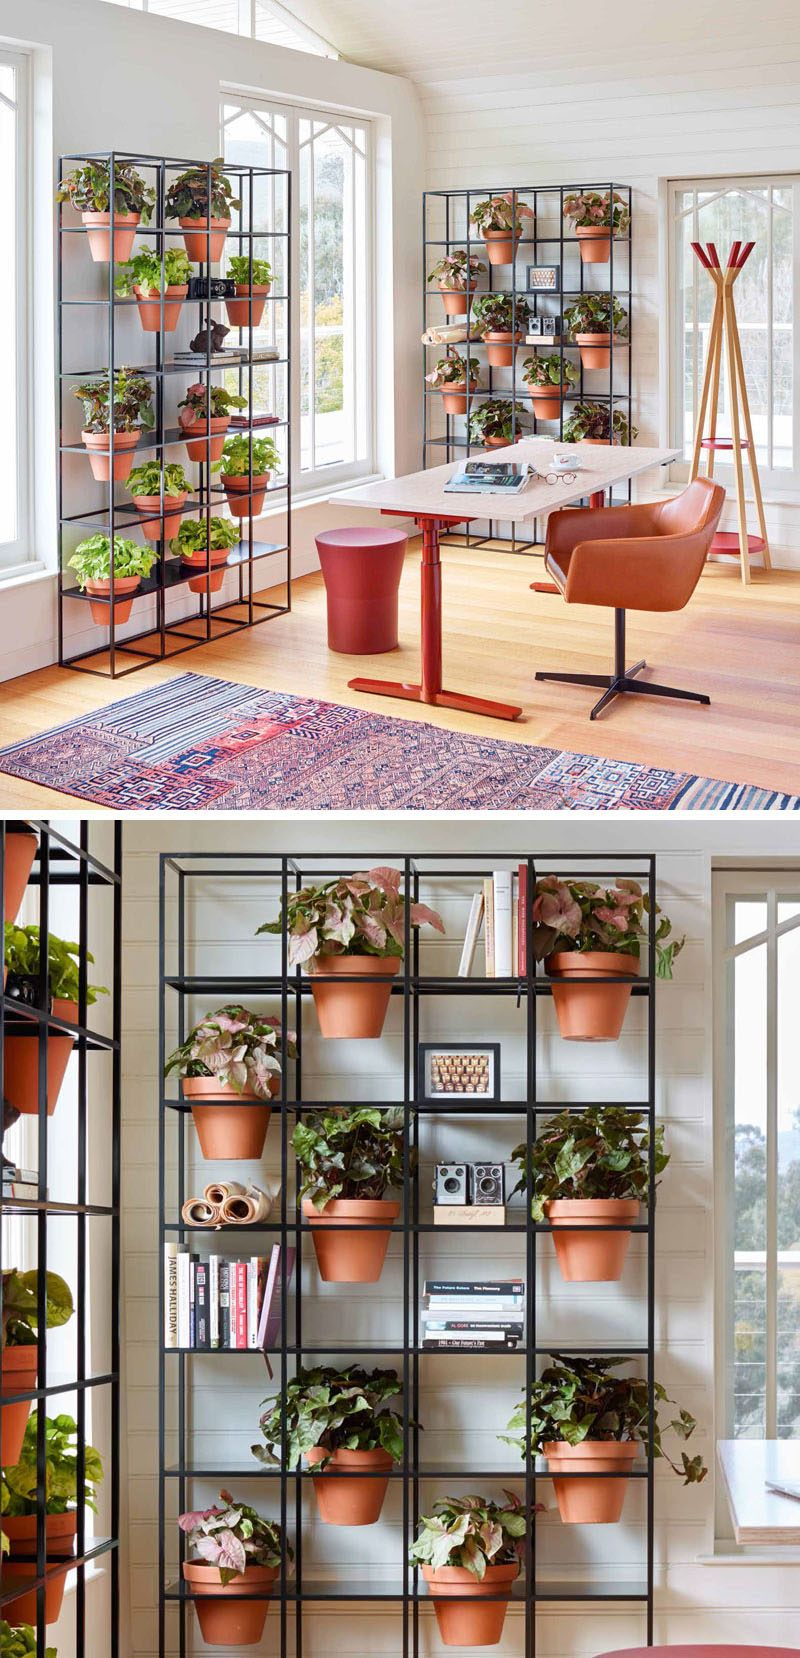 An easy way to create a vertical grid garden in your home showroom